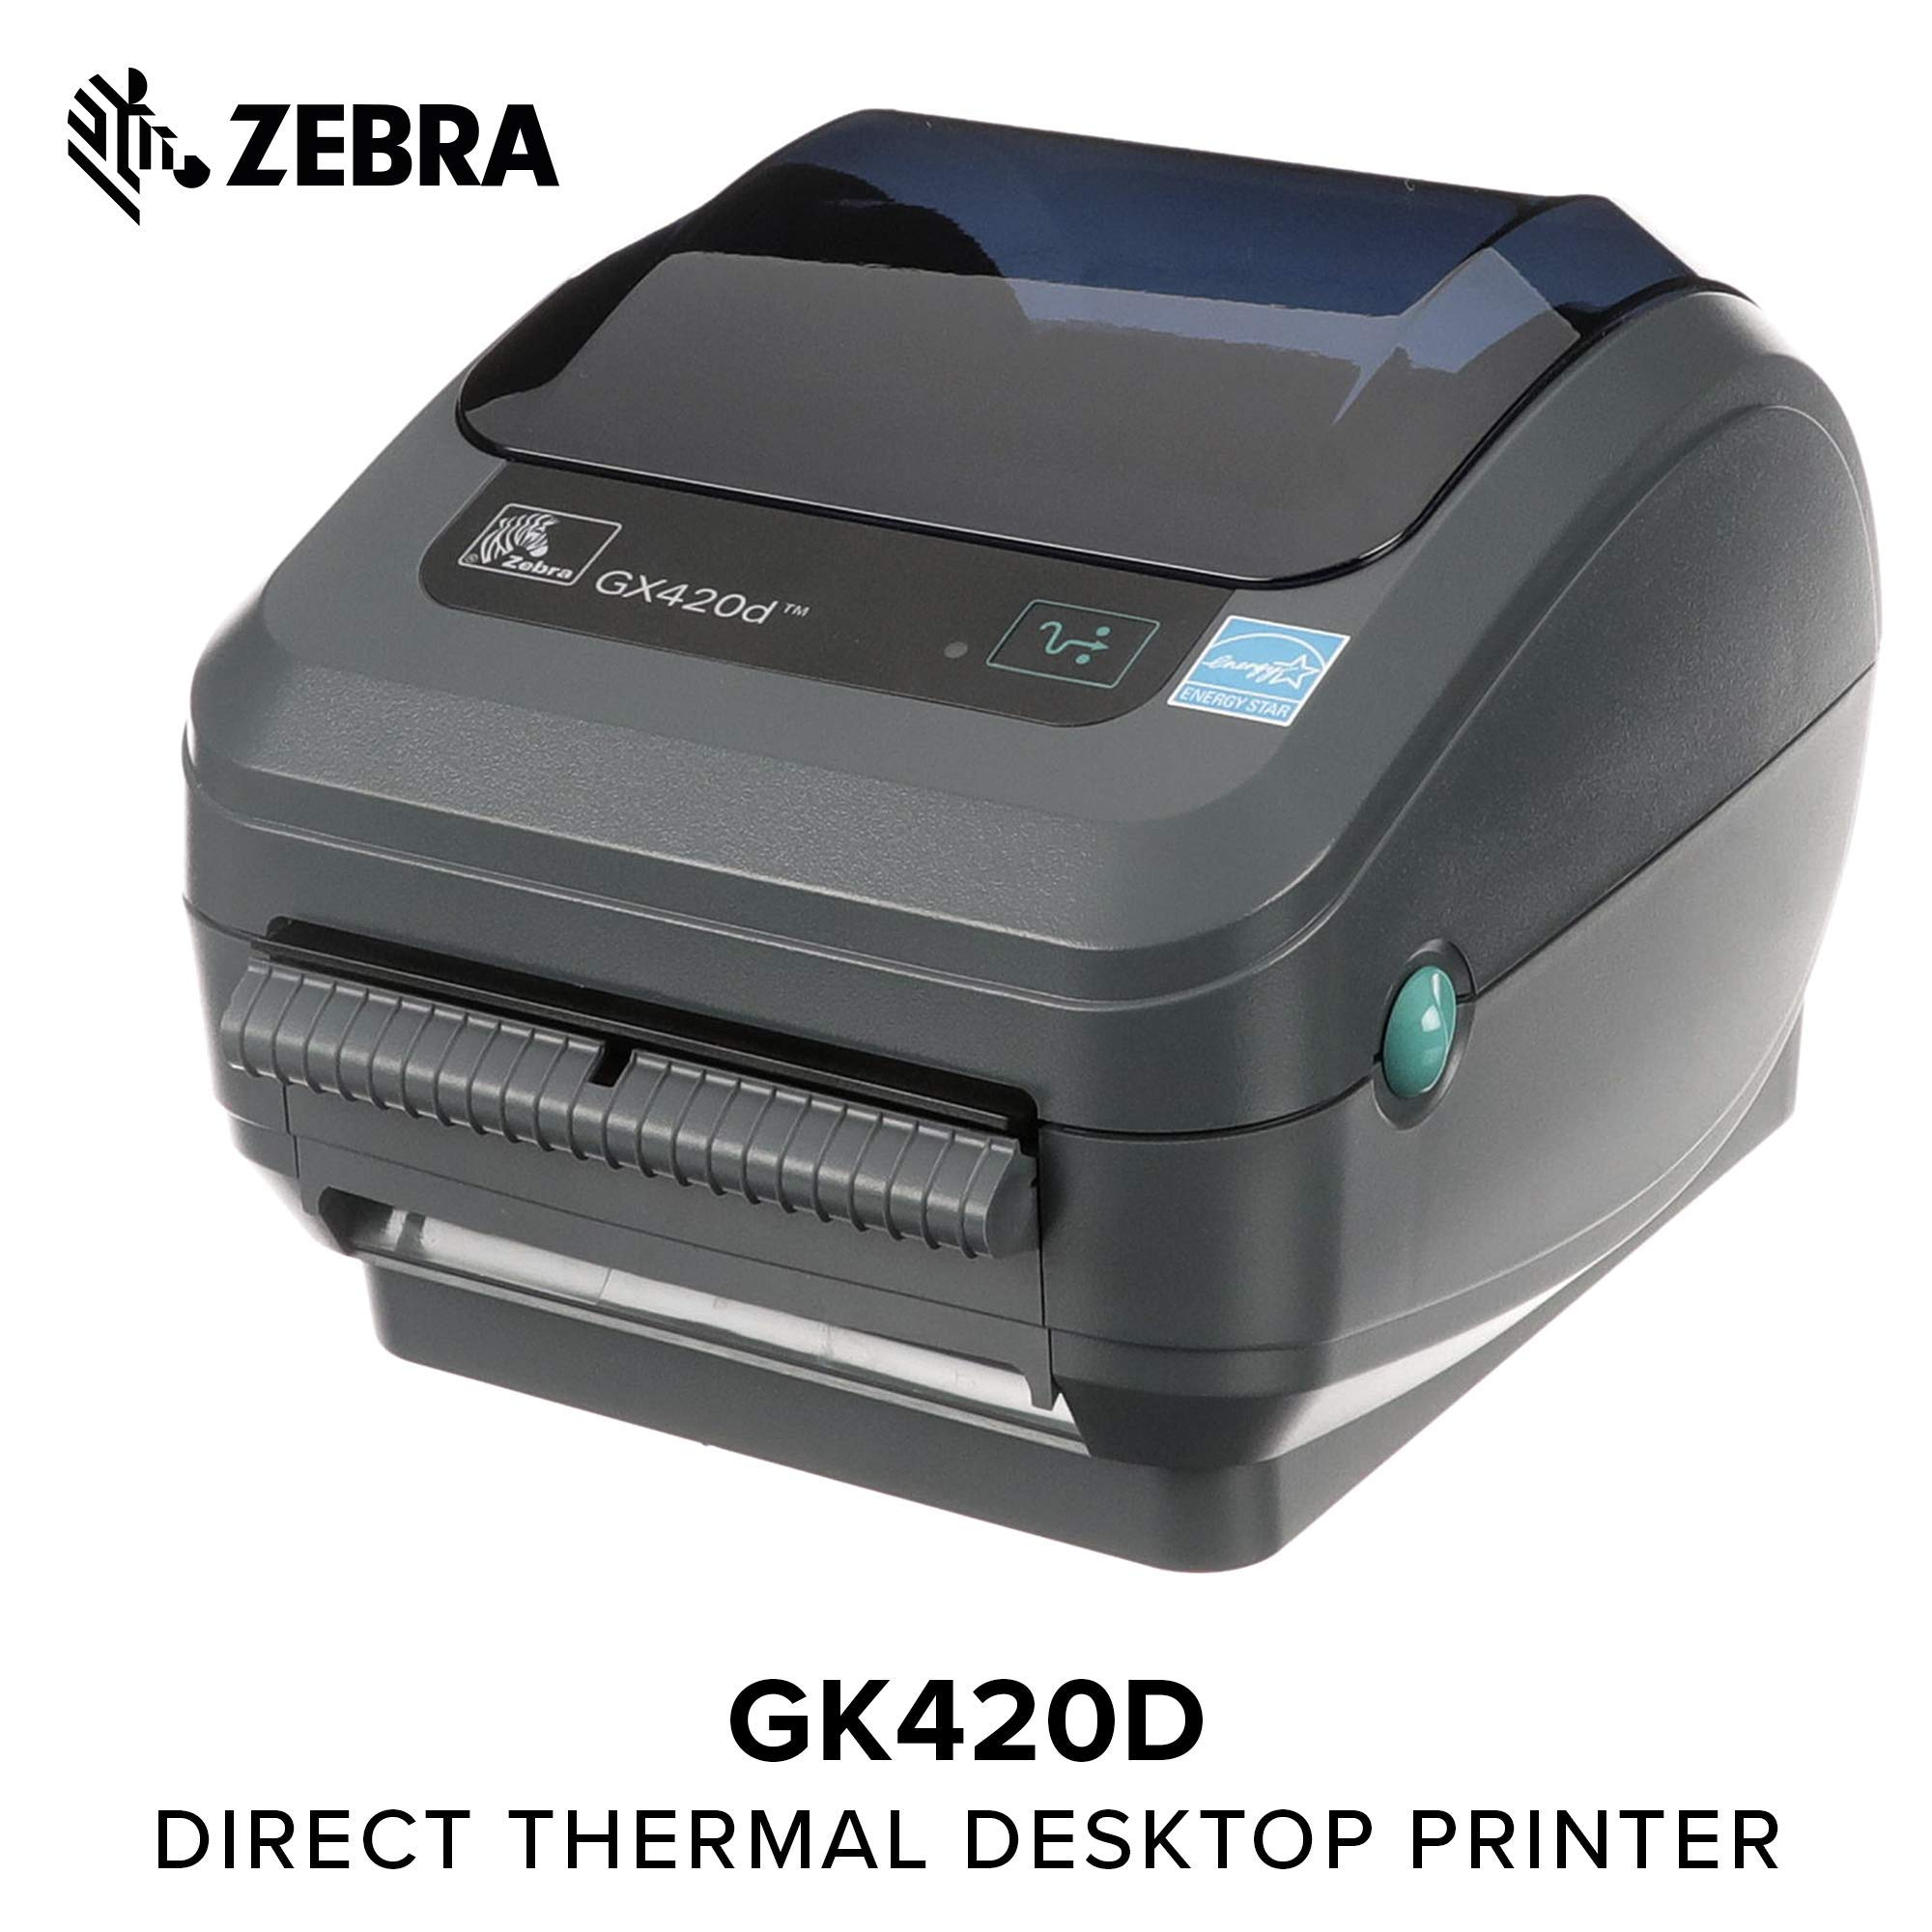 Zebra - GX420d Direct Thermal Desktop Printer for Labels, Receipts, Barcodes, Tags, and Wrist Bands - Print Width of 4 in - USB, Serial, and Ethernet Port Connectivity (Includes Peeler) (Renewed) by ZEBRA